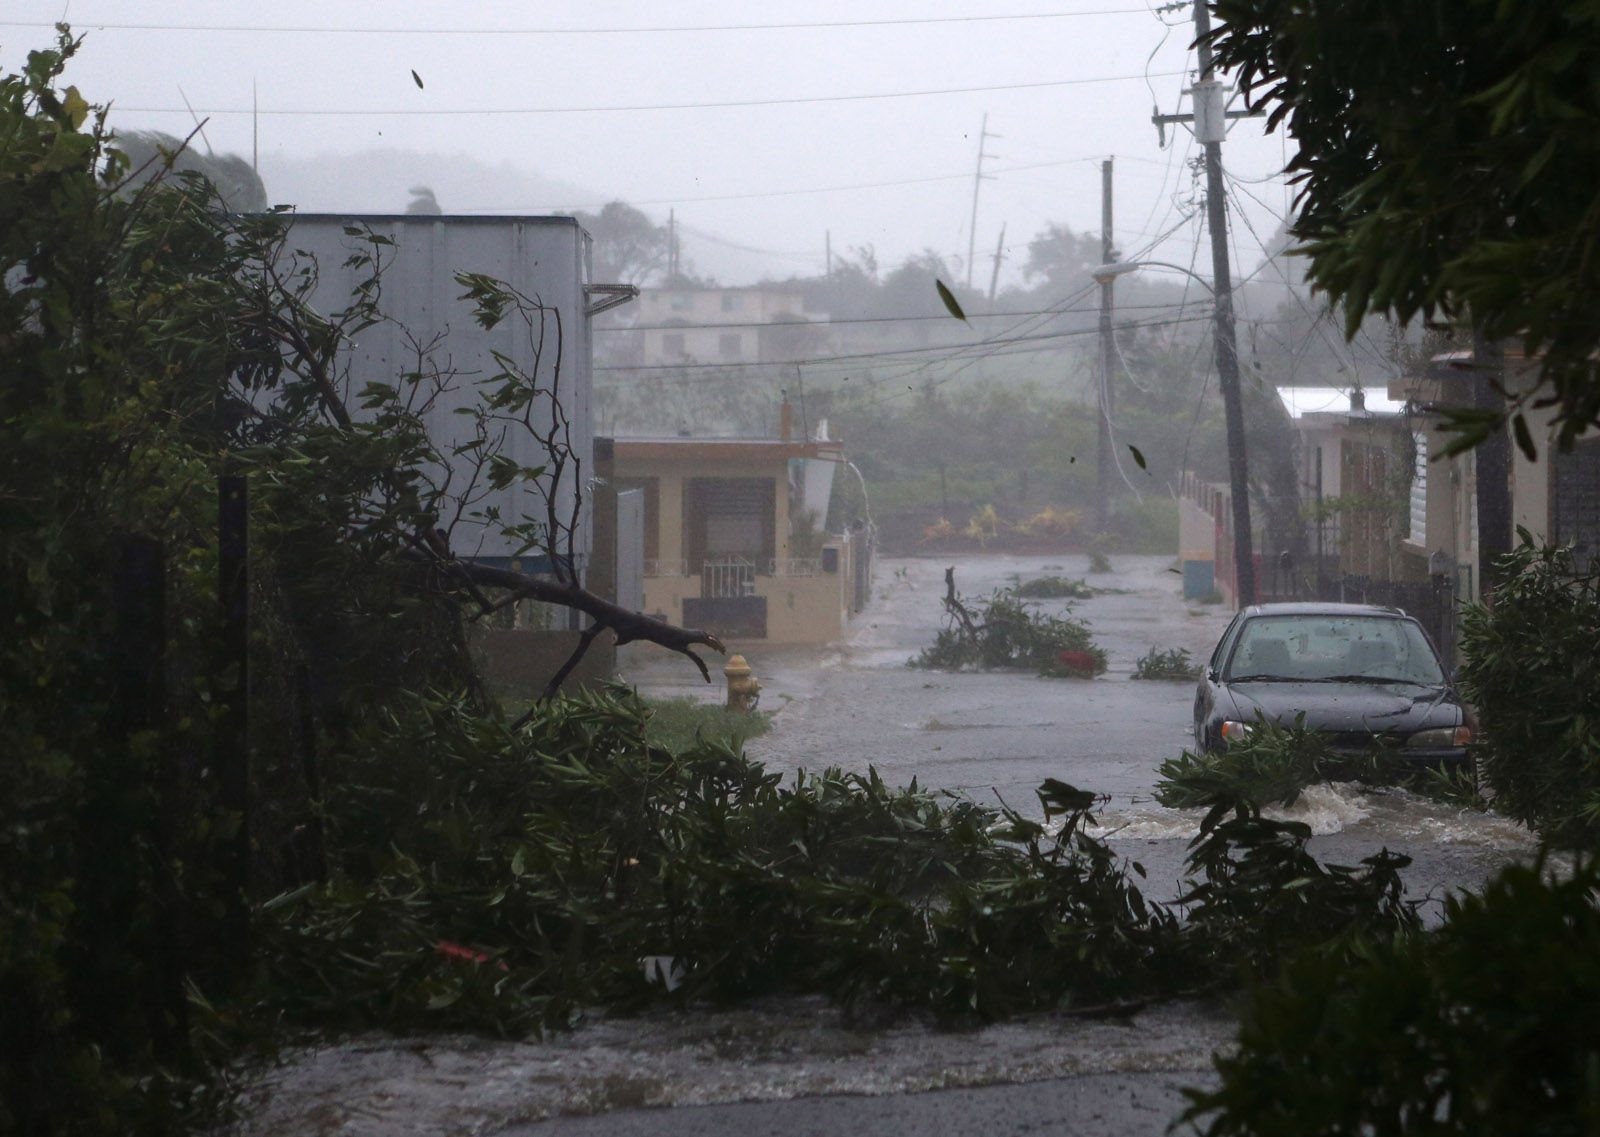 FAJARDO, PUERTO RICO - SEPTEMBER 06: A street is flooded during the passing of Hurricane Irma on September 6, 2017 in Fajardo, Puerto Rico. The category 5 storm is expected to pass over Puerto Rico and the Virgin Islands today, and make landfall in Florida by the weekend. (Photo by Jose Jimenez/Getty Images)